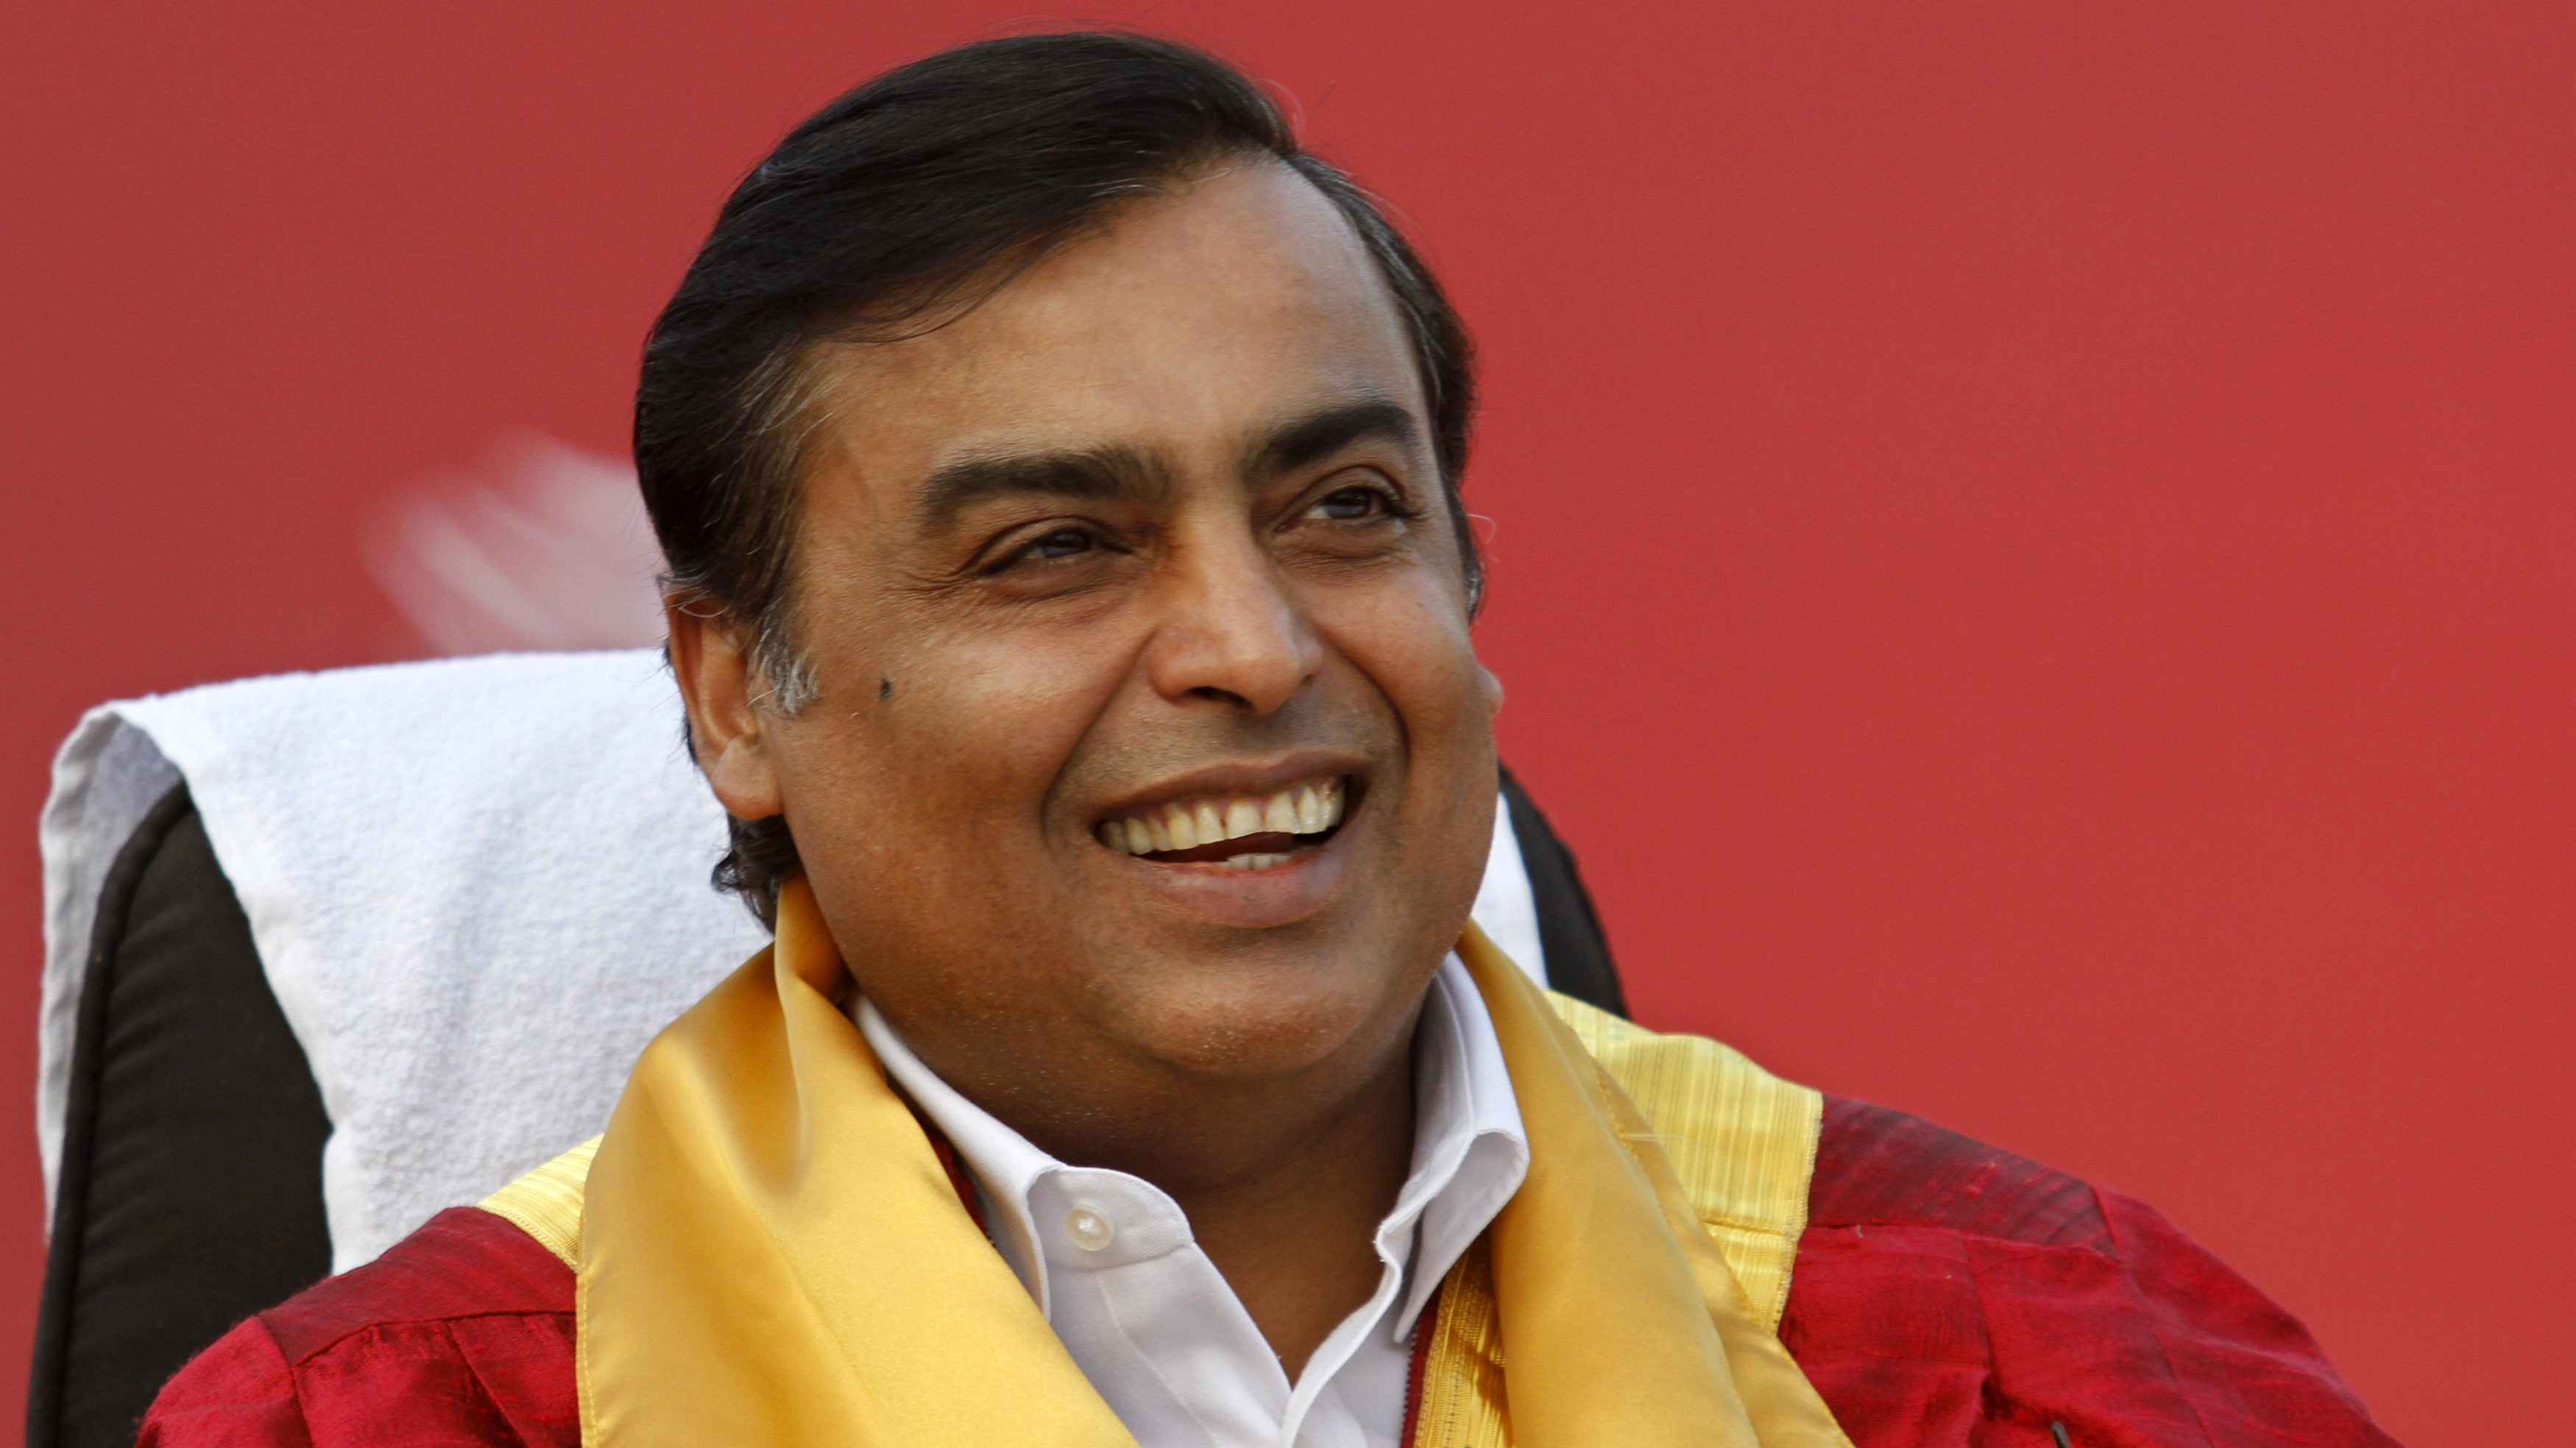 Mukesh Ambani, chairman of Reliance Industries Limited, smiles during a convocation ceremony at Pandit Deendayal Petroleum University (PDPU), a school of petroleum management at Gandhinagar in the western Indian state of Gujarat September 27, 2011. REUTERS/Amit Dave (INDIA - Tags: EDUCATION BUSINESS)